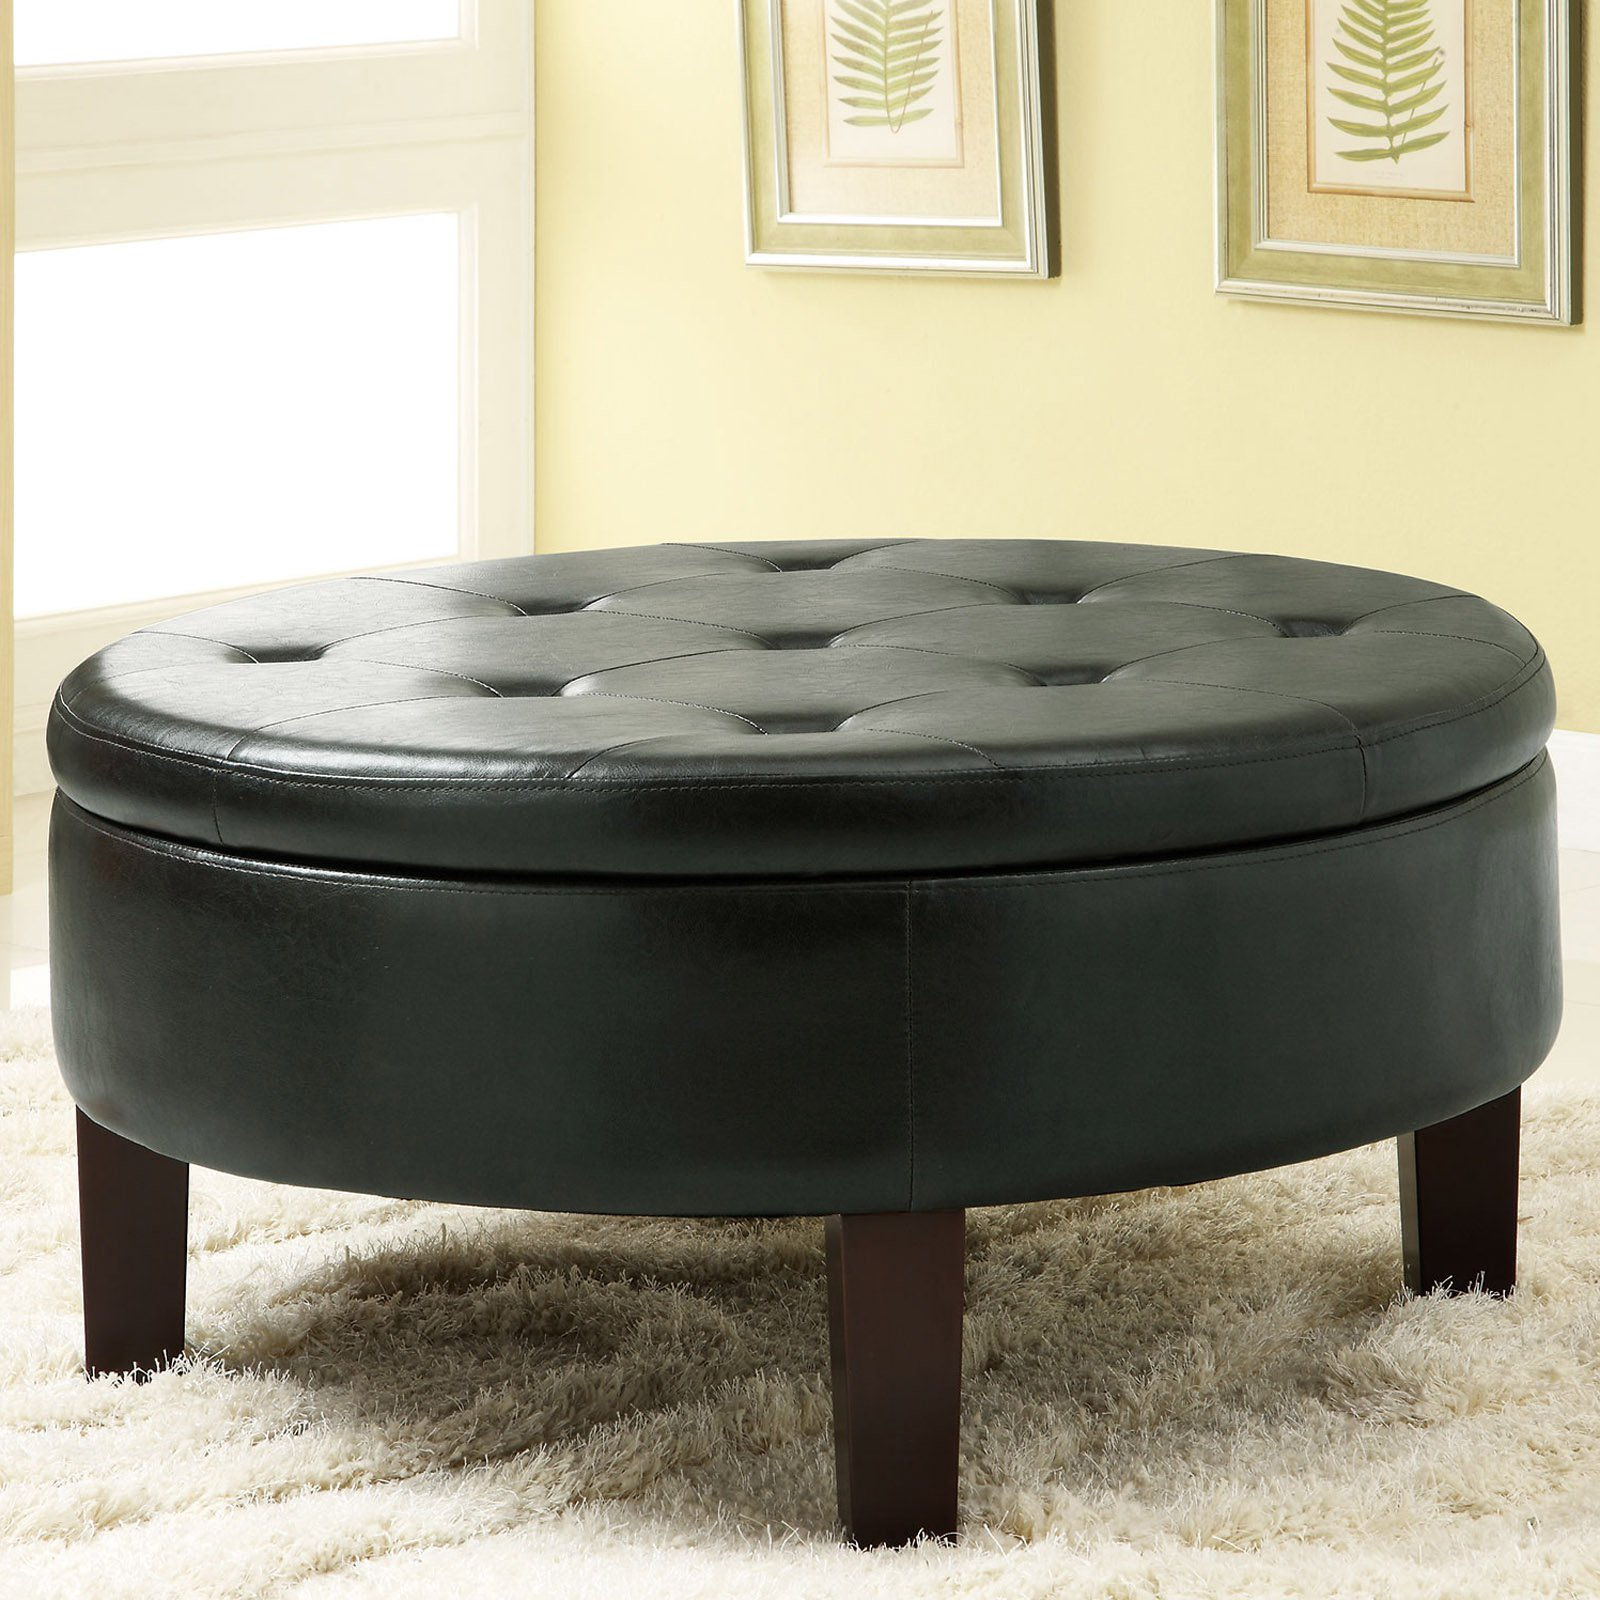 Coaster Company Round Storage Ottoman, Dark Brown Leatherette